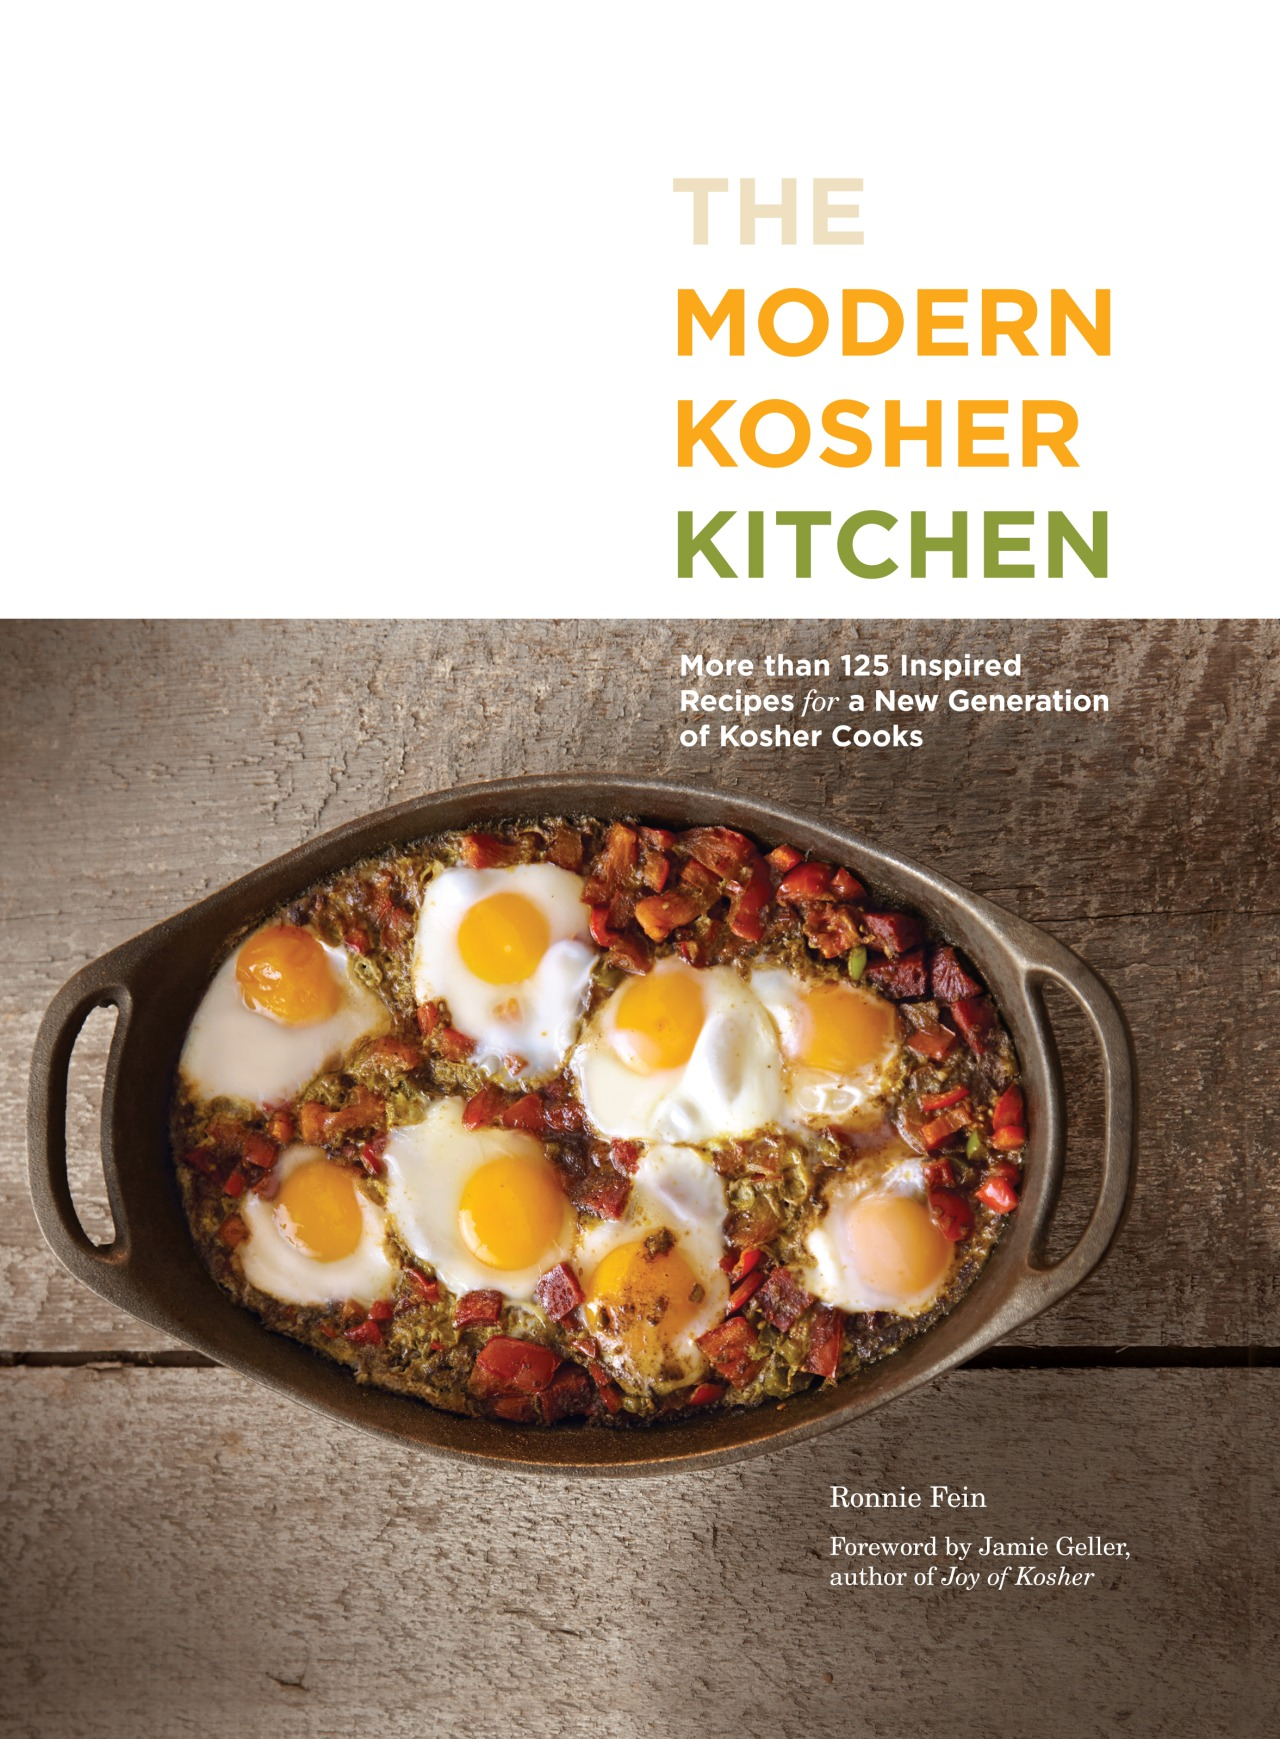 This is the cover of my new cookbook. I'm so excited! And that dish, the one that's on the cover, is one of my favorites. It's a version of shakshuka, which is usually a veggie-and-egg dish, but this one has crispy little pieces of Mergeuz sausage. Quite the fabulous dinner, brunch or weekend lunch dish. The book will hit the shelves in November but you can preorder it here (lowest price I've seen), here, here and here, and find an indie store to order here. As I mentioned in my first post about the book, Don't let the title stop you if you aren't kosher or aren't Jewish. This is a book of modern American recipes, not traditional Jewish recipes. But so many kosher home cooks buy cookbooks and then have to think about changes and substitutes to non-kosher recipes that I figured I would do exactly that in this book (as I did with my first kosher cookbook, Hip Kosher). So if you happen to keep kosher, you can prepare every single one of these recipes in your kitchen. The book includes the usual categories: soup, salad, meat, dessert and so on. And special ones that have been requested by readers: Breakfast/brunch/sandwiches, Budget oriented recipes, Vegetarian recipes and Hors D'oeuvres/Appetizers. Also a chapter on Passover. Don't forget to send receipts to modernkosherkitchen@gmail.com.  The first hundred receipts we get at that address for pre-order copies will get a bookplate signed by yours truly. I know there have been pre-orders but not 100 receipts to that email address — so SEND THEM IN!